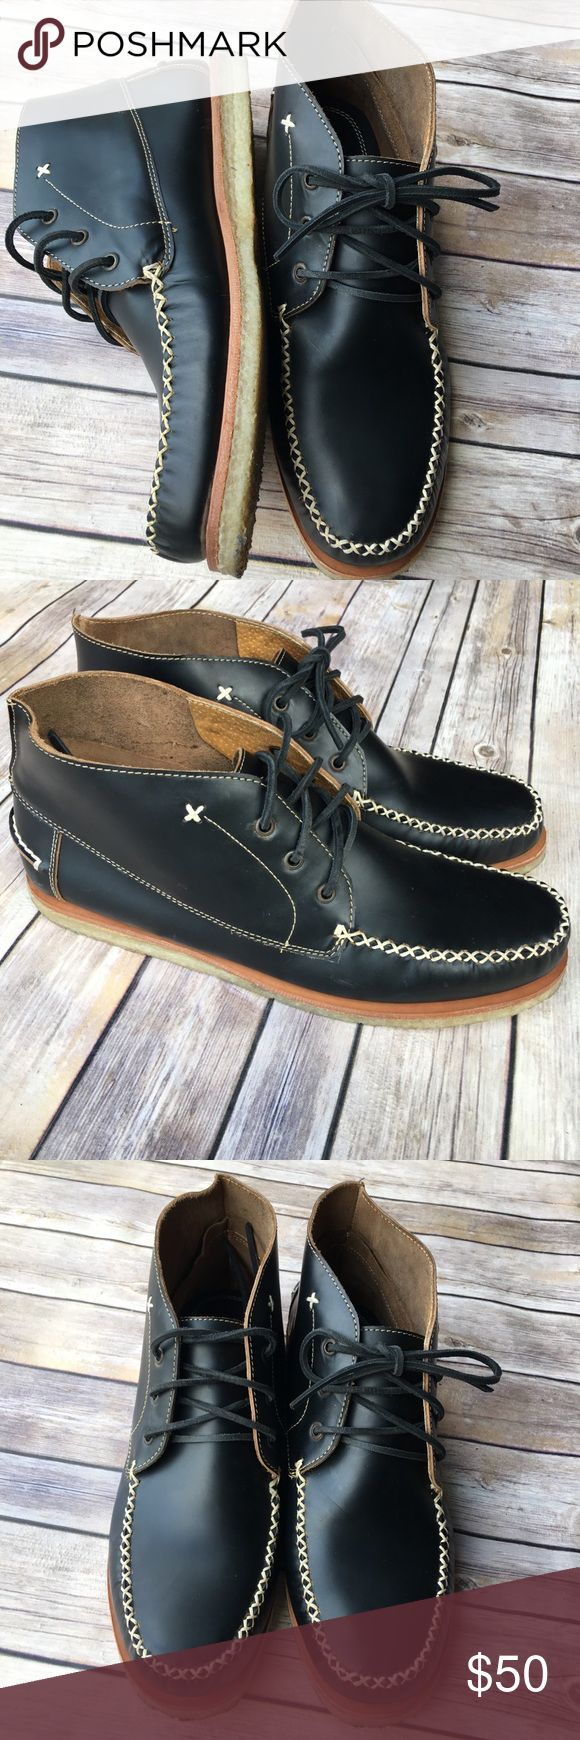 J. D. Fisk Black Chukka boot with leather laces Black chukka boots with striking white stitching details and rubber soles. I'm excellent condition only worn a few times. Sizing isn't listed in shoe but they are a size 12. Black leather laces come with. No longer have the box. J. D. Fisk Shoes Chukka Boots